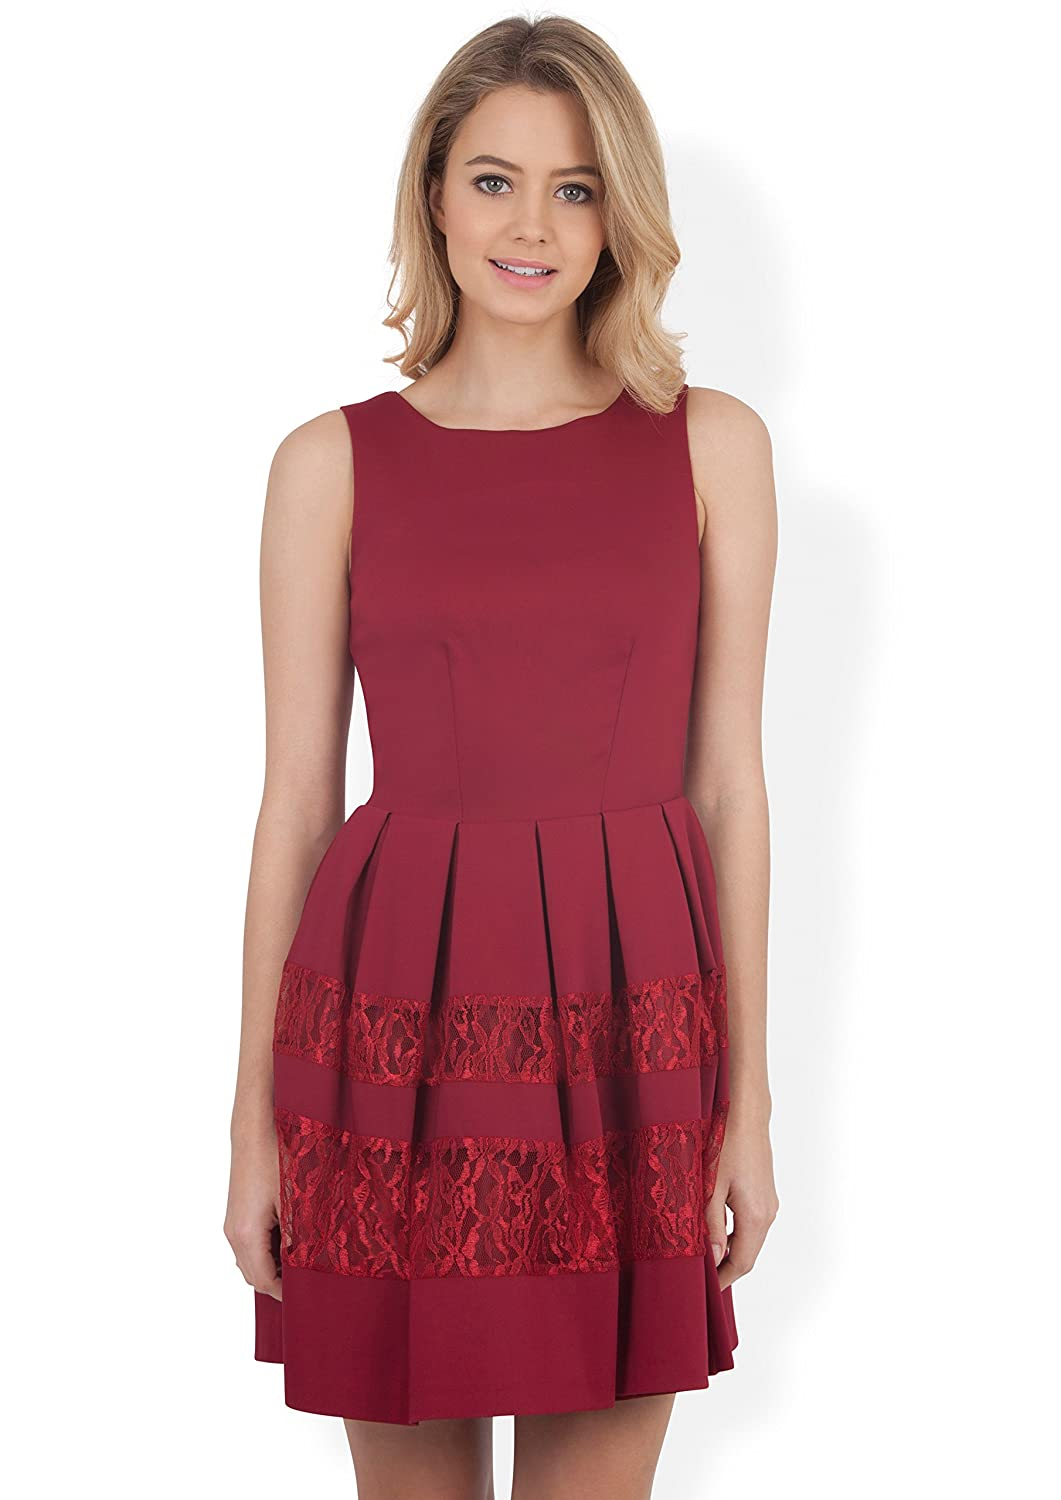 Closet Kensington Red Fit and Flare Dress With Lace Bands